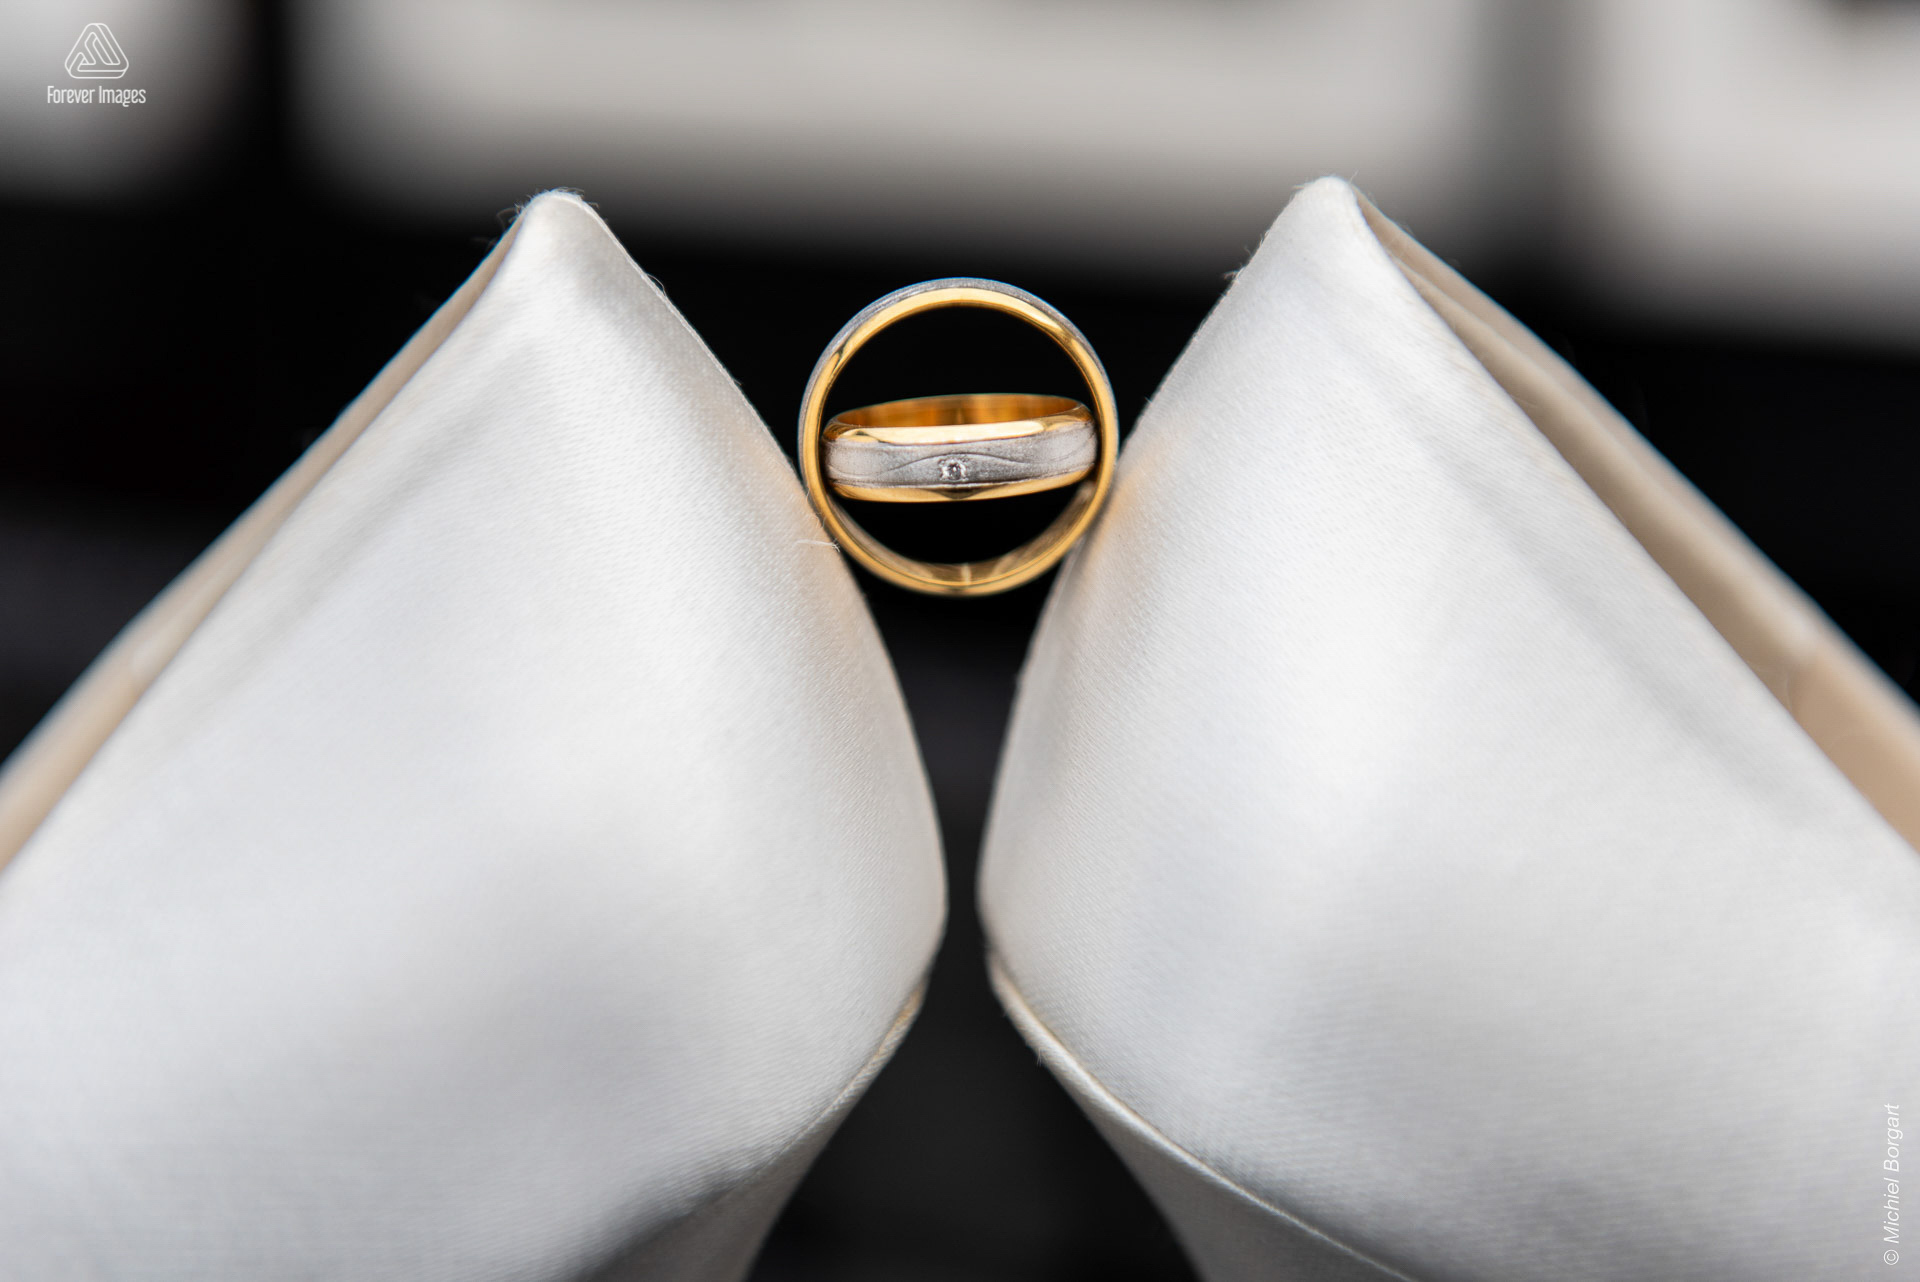 Wedding photo detail her ring in his ring | Wedding Photographer Michiel Borgart - Forever Images.